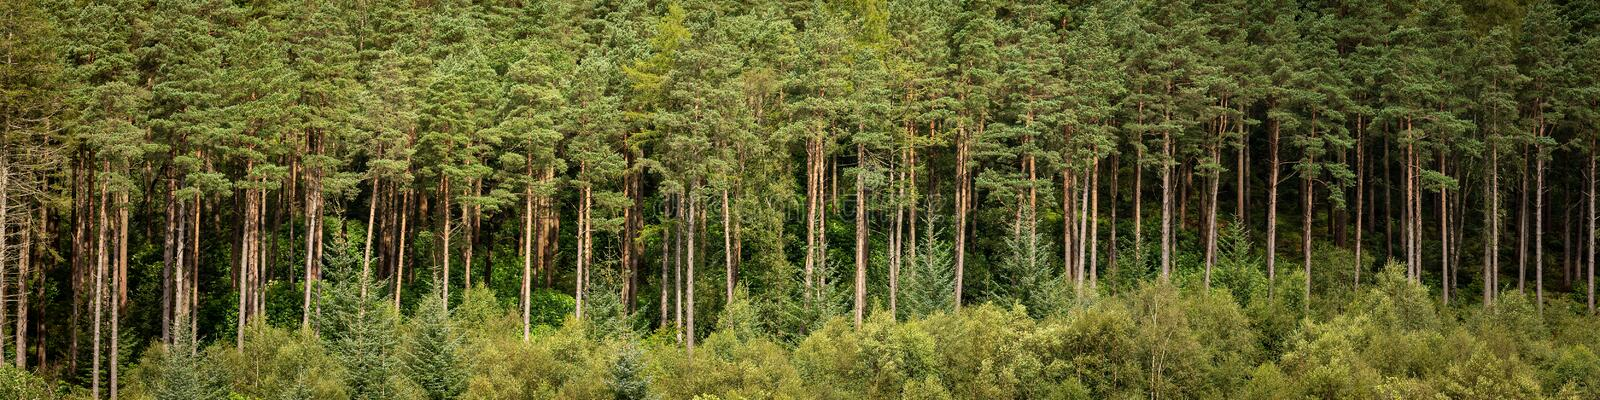 Pine forest on the bonnie banks of Loch Lomond royalty free stock image